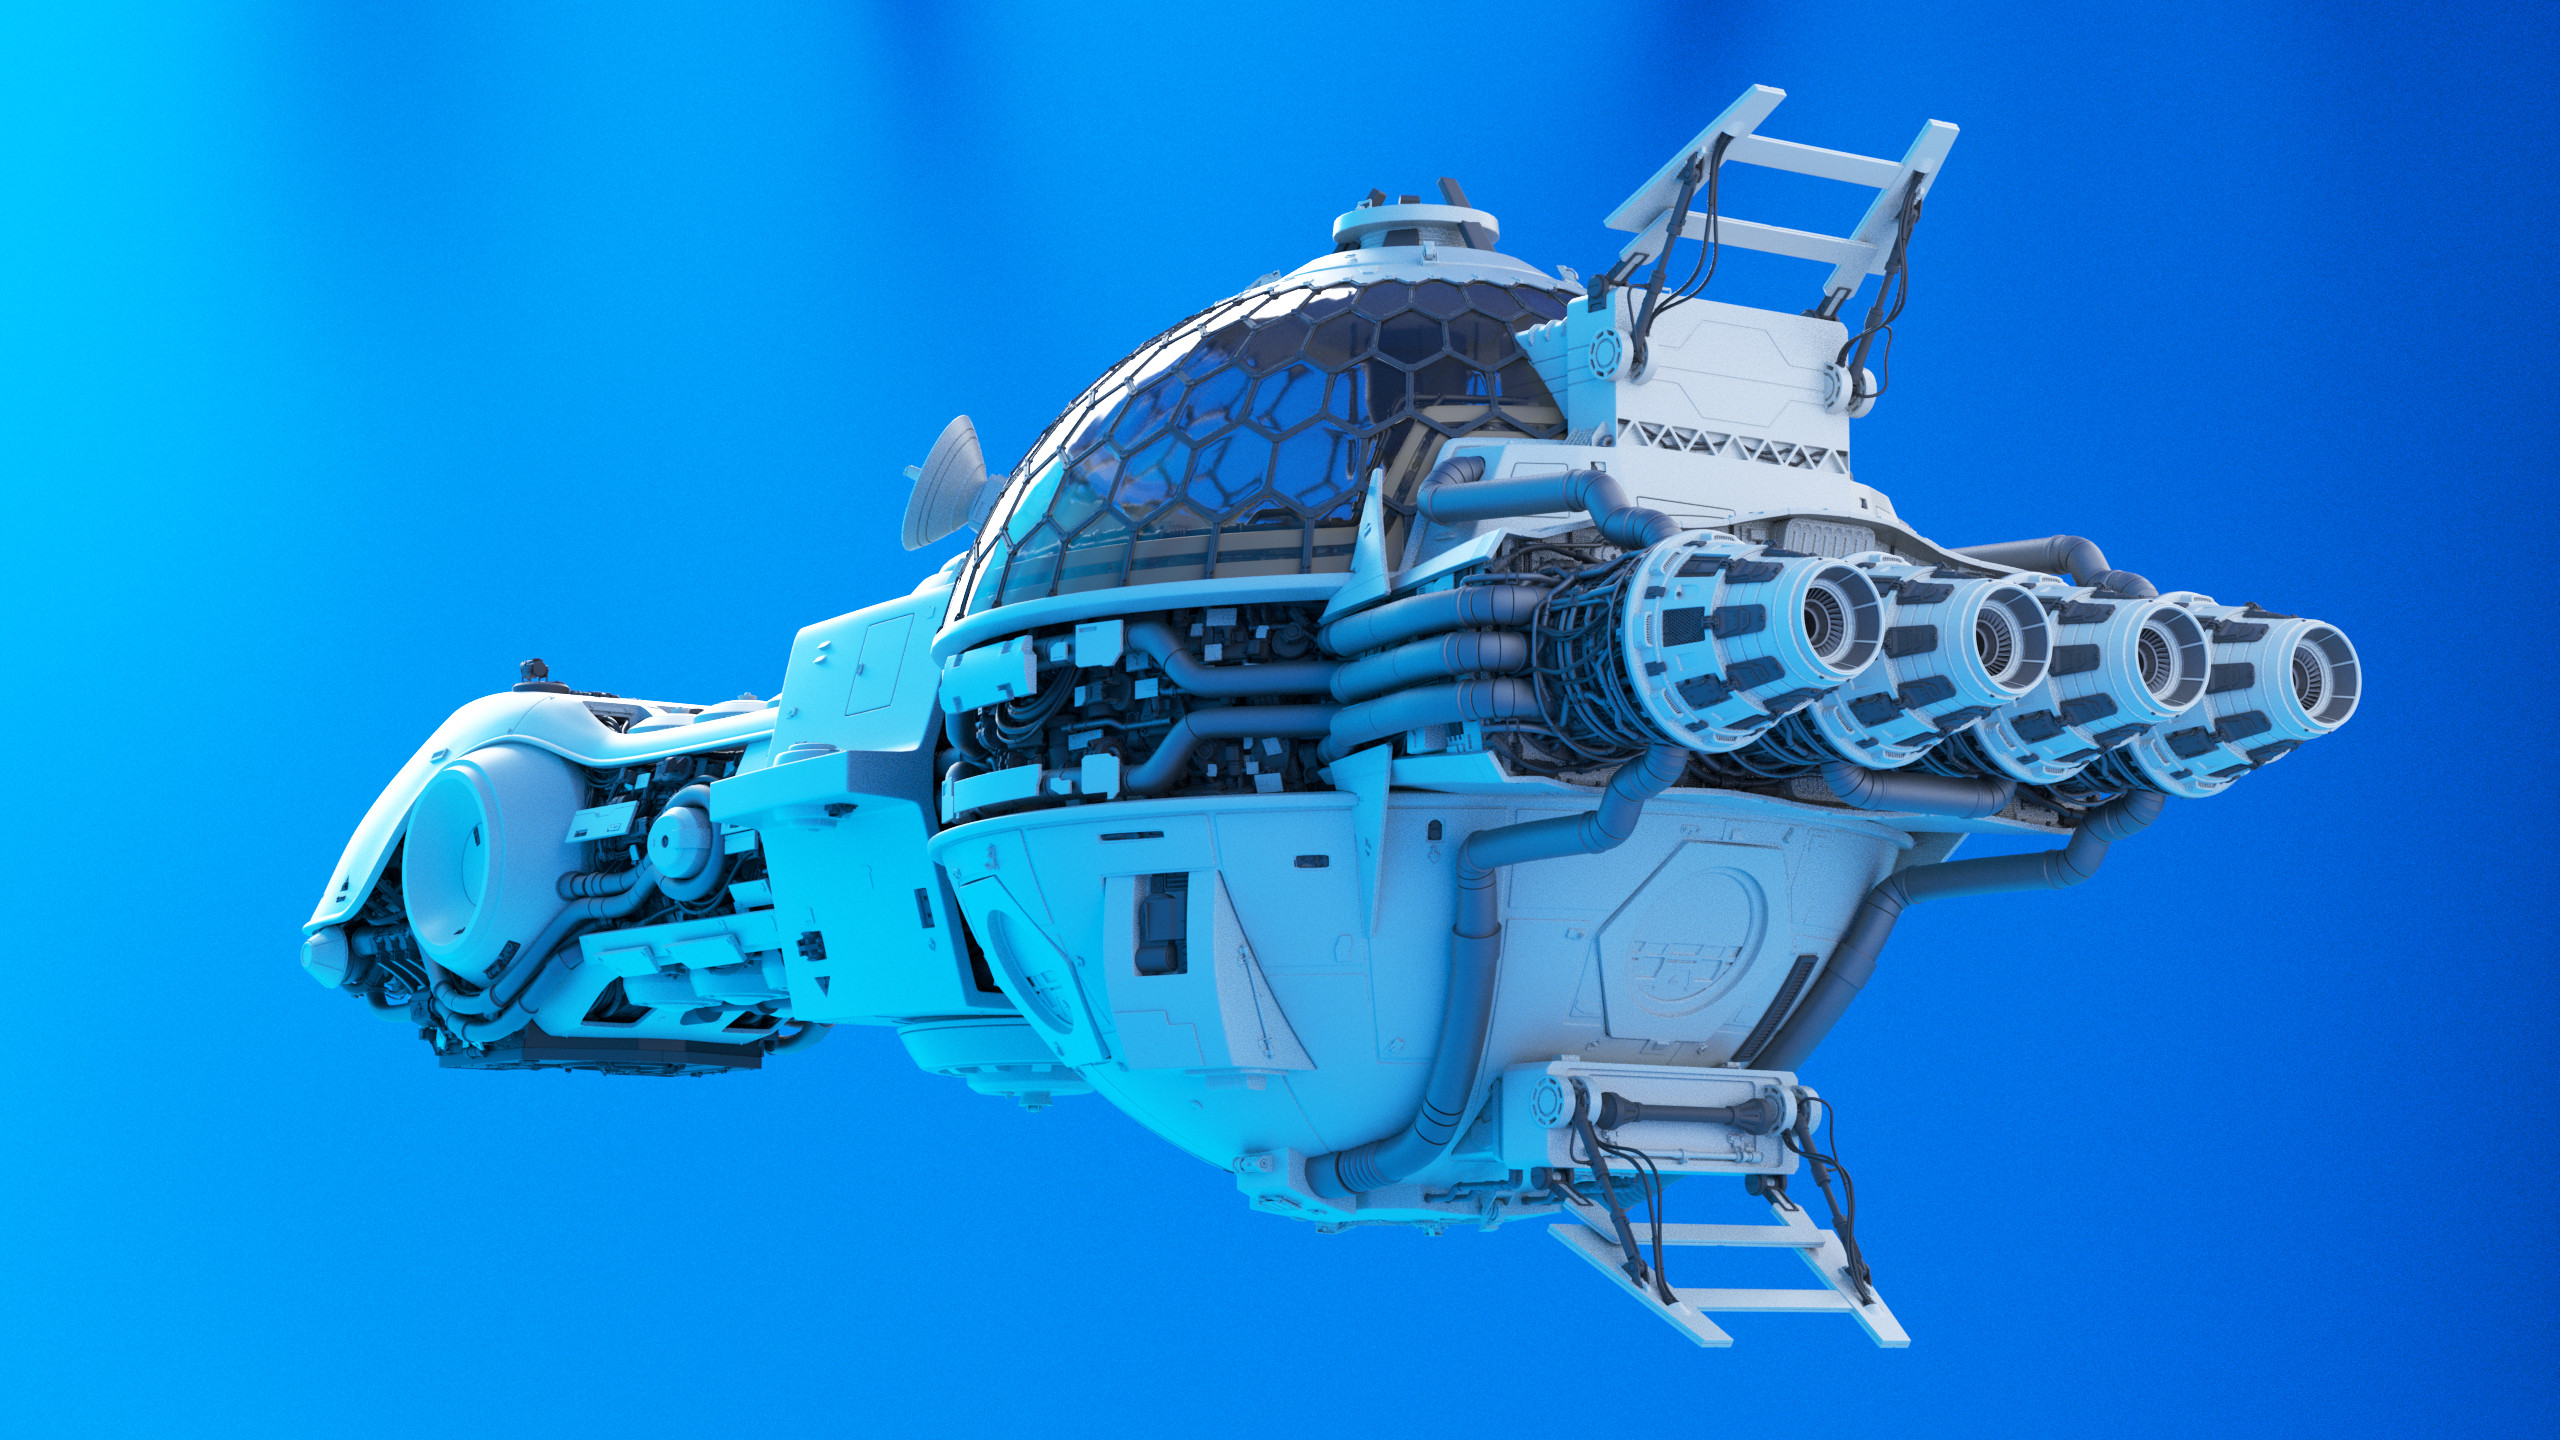 My friend Mathieu Navarro helped me modeling this spaceship. He mostly worked on the exhausts.